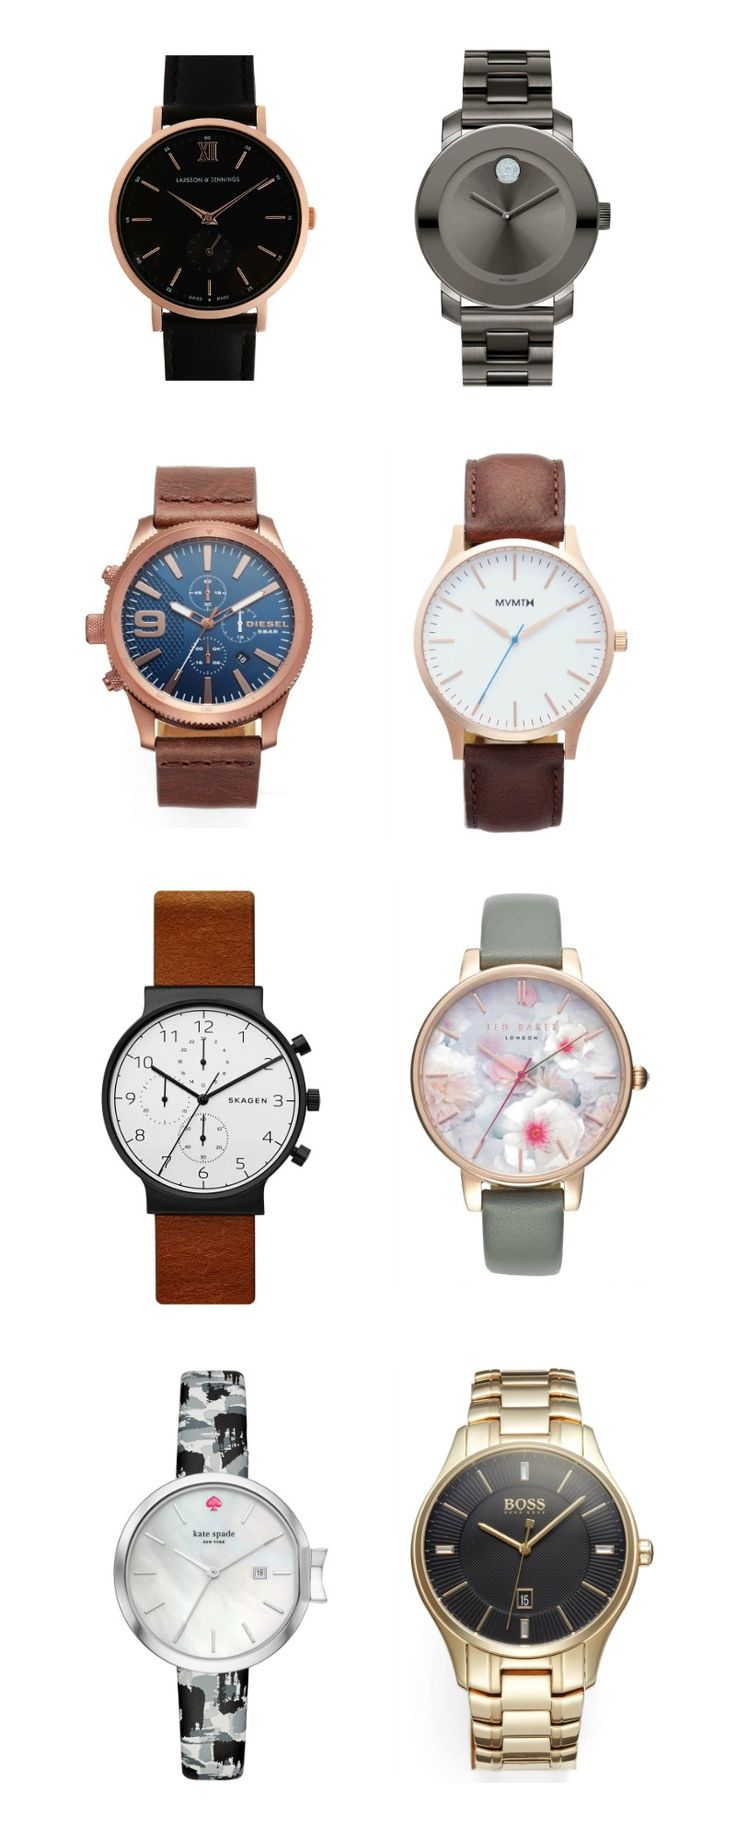 Watches for grooms and groomsmen